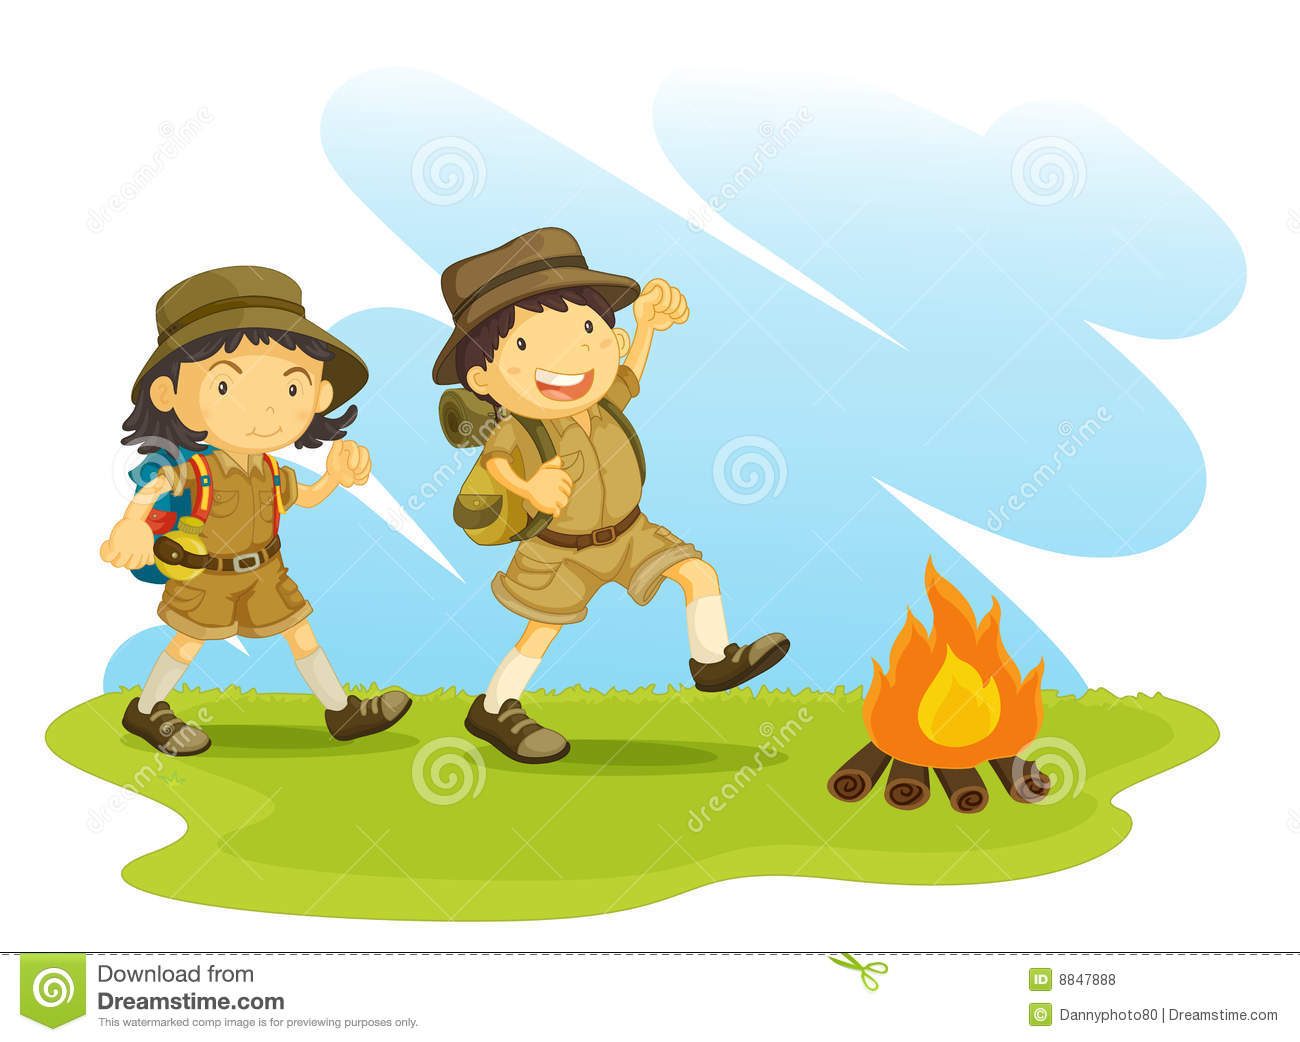 An illustration of two scouts outside next to a camp fire.